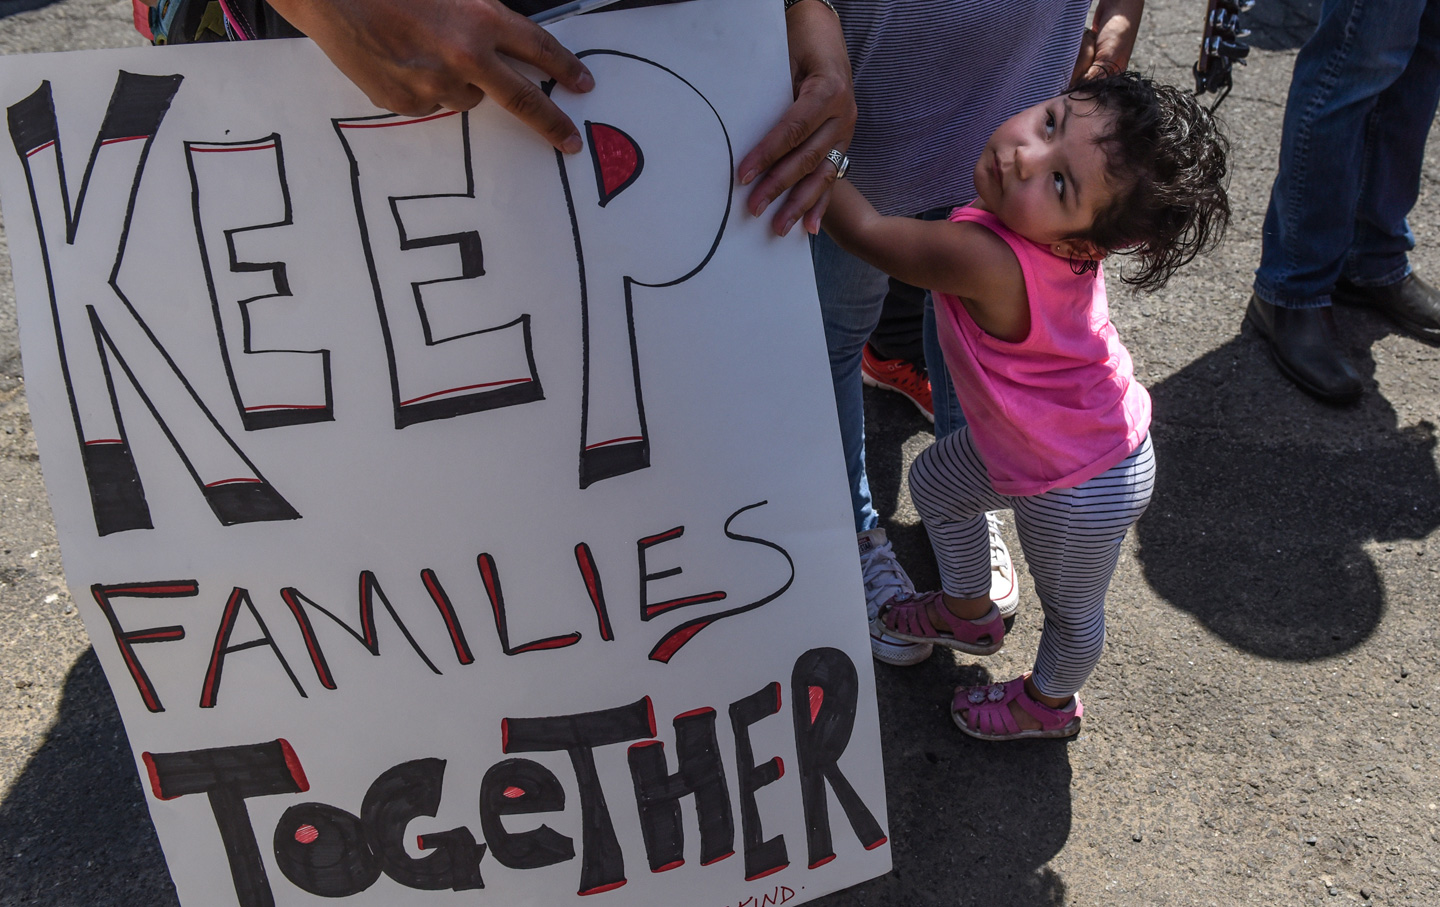 The Trump Immigration-Law Change That Could Increase Child Poverty